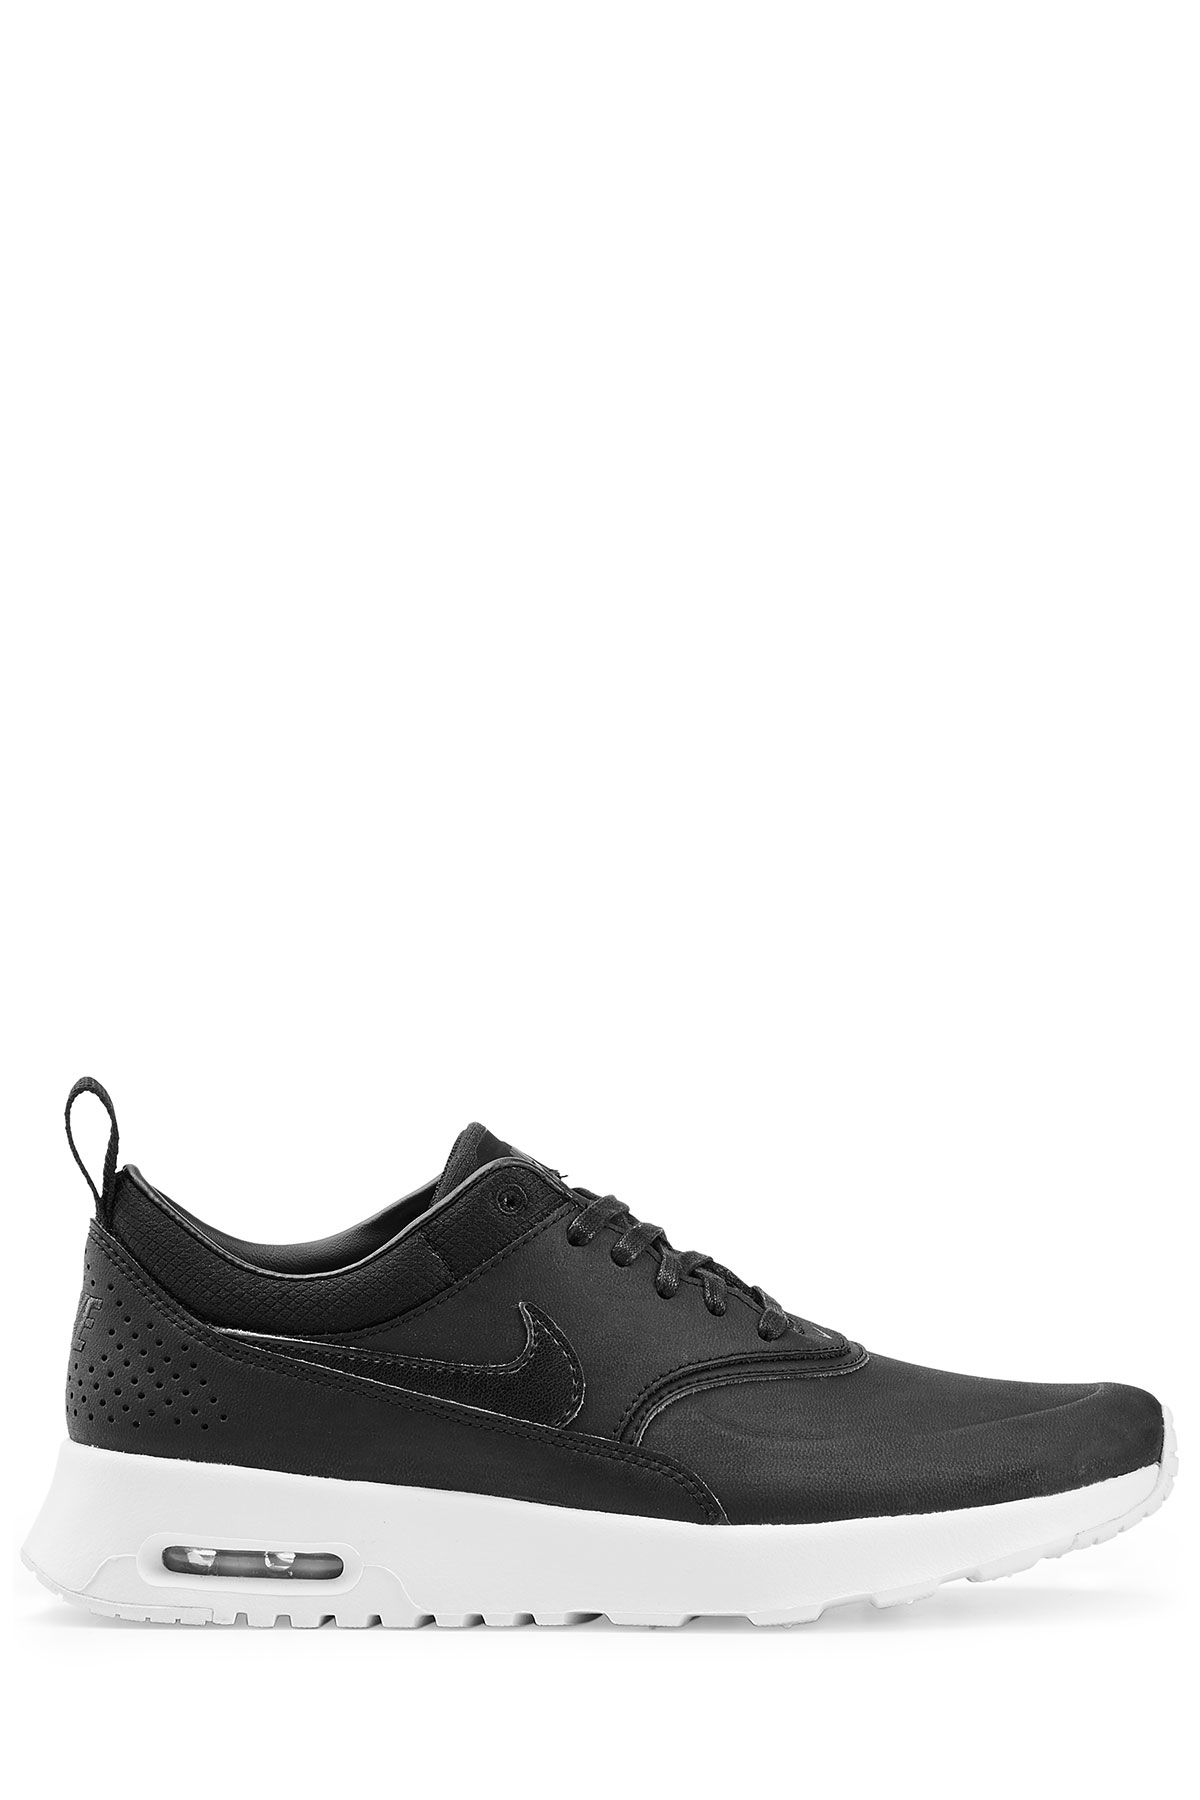 Nike Thea Black Leather